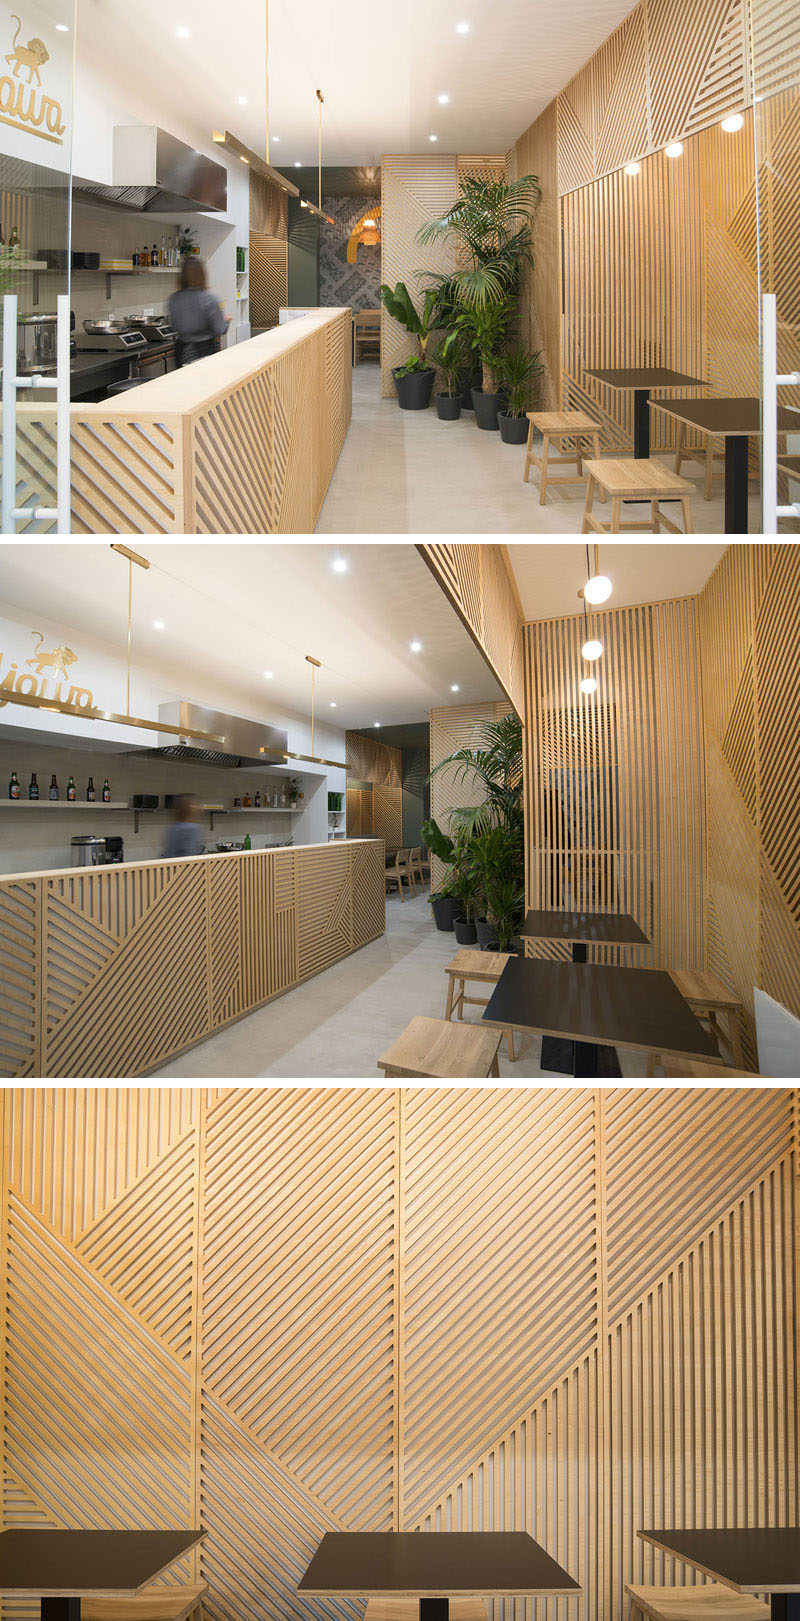 Wall Decor Idea This Restaurant Covered Its Walls With